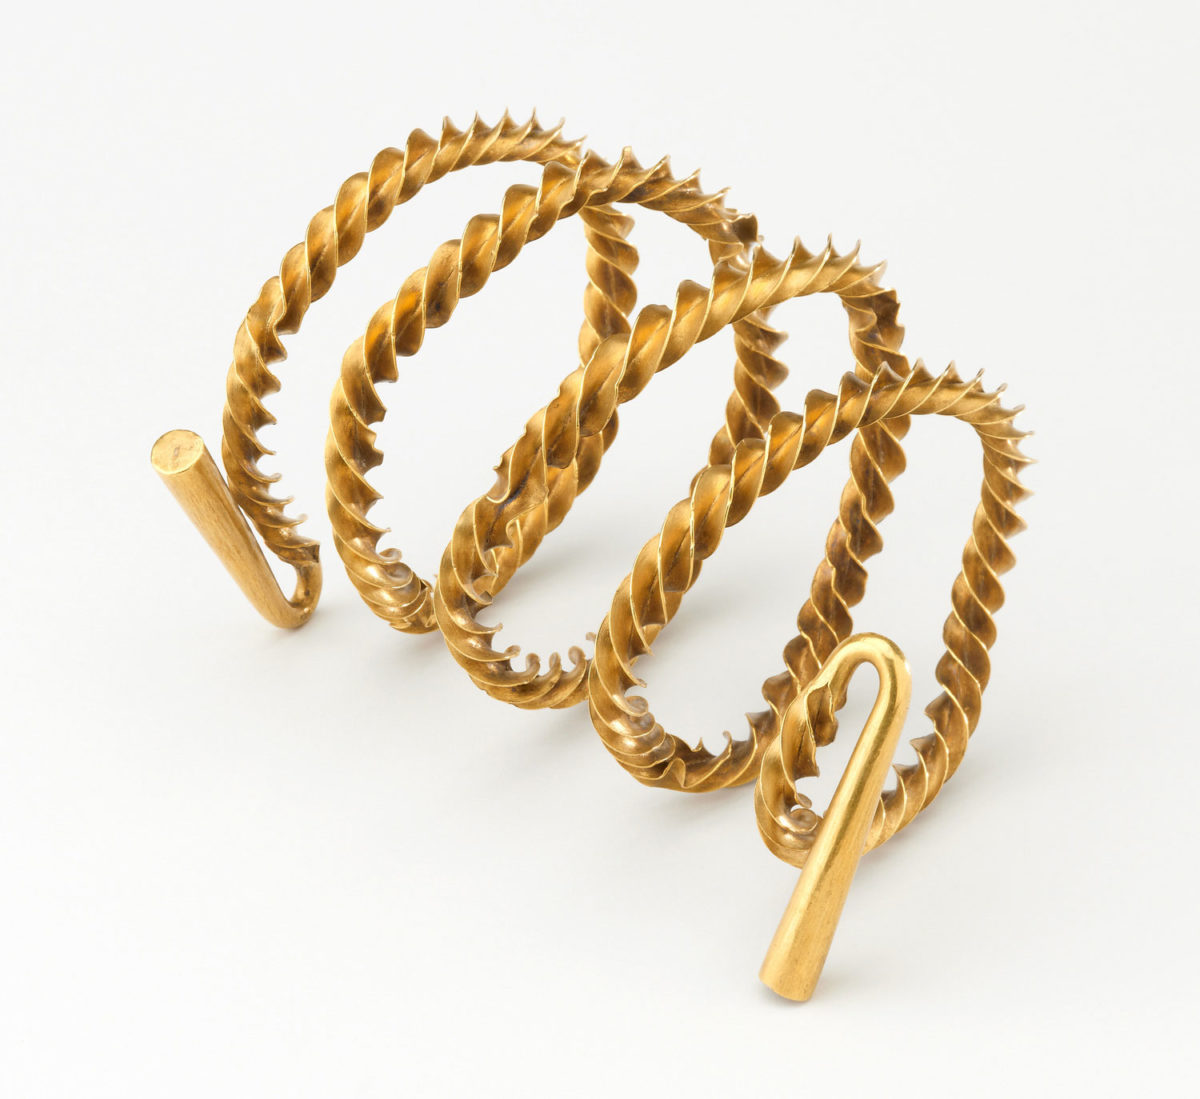 Gold flange twisted spiral torc (around 15cm long; 367.1 g) from Castlemount, Dover, Kent, England. Photo Credit: British Museum/University of Göttingen.